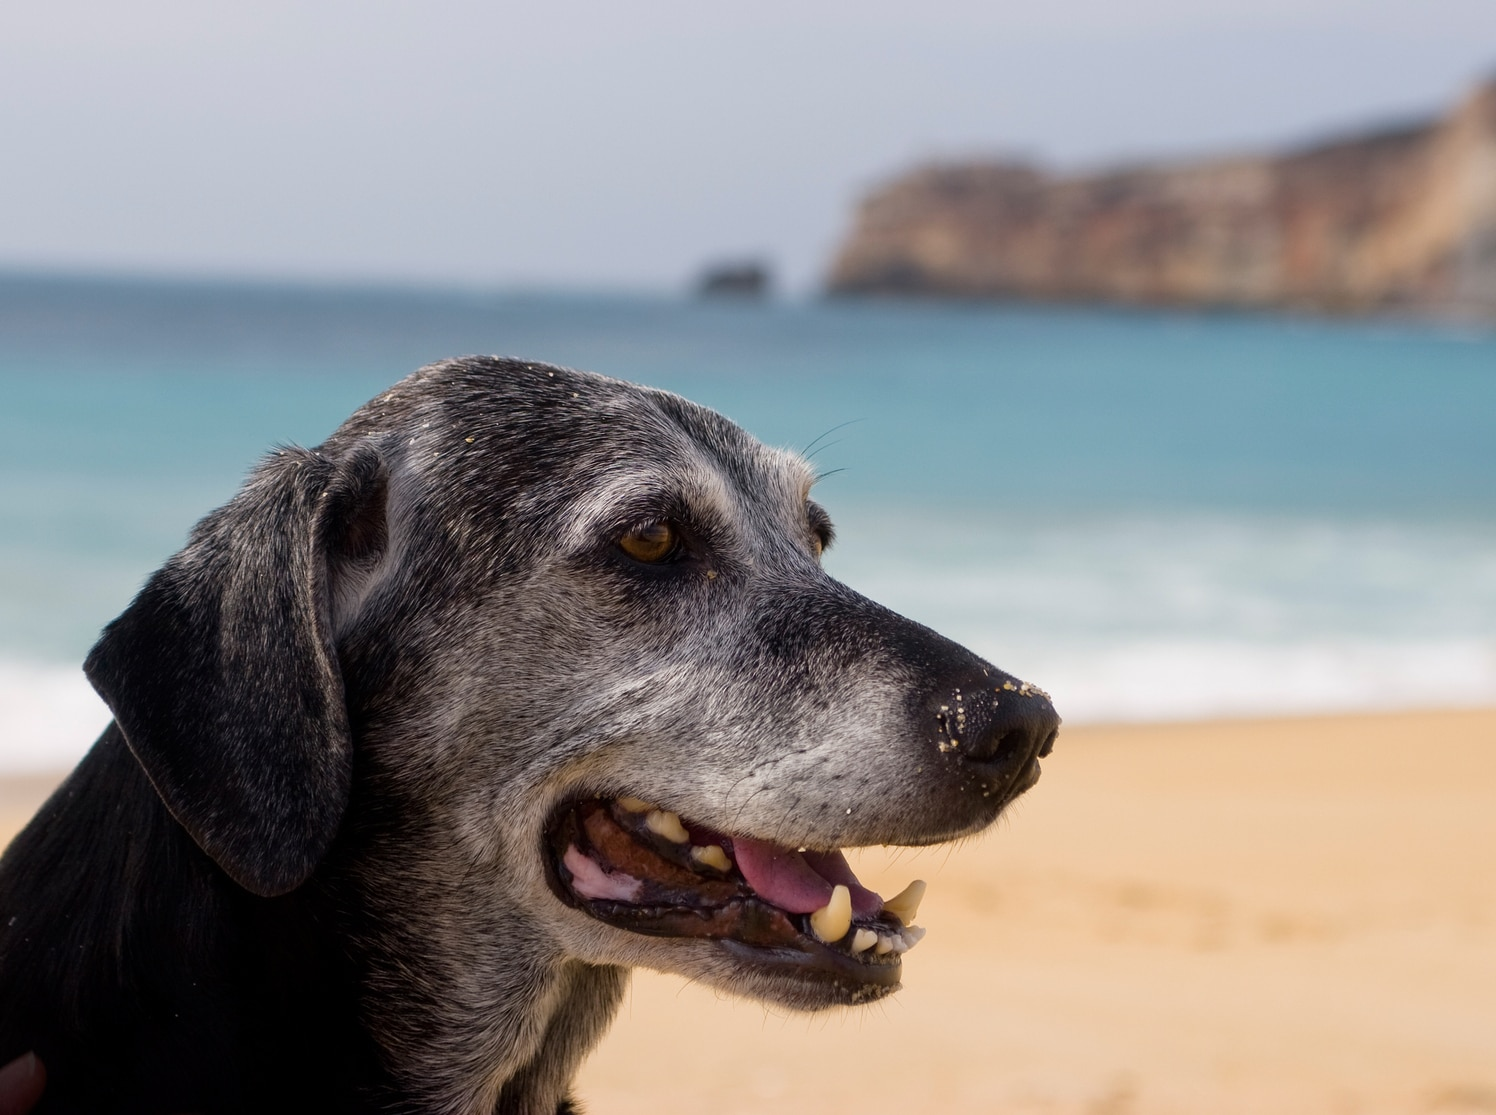 Older black dog with grayed muzzle sits at the beach, ocen in the background.